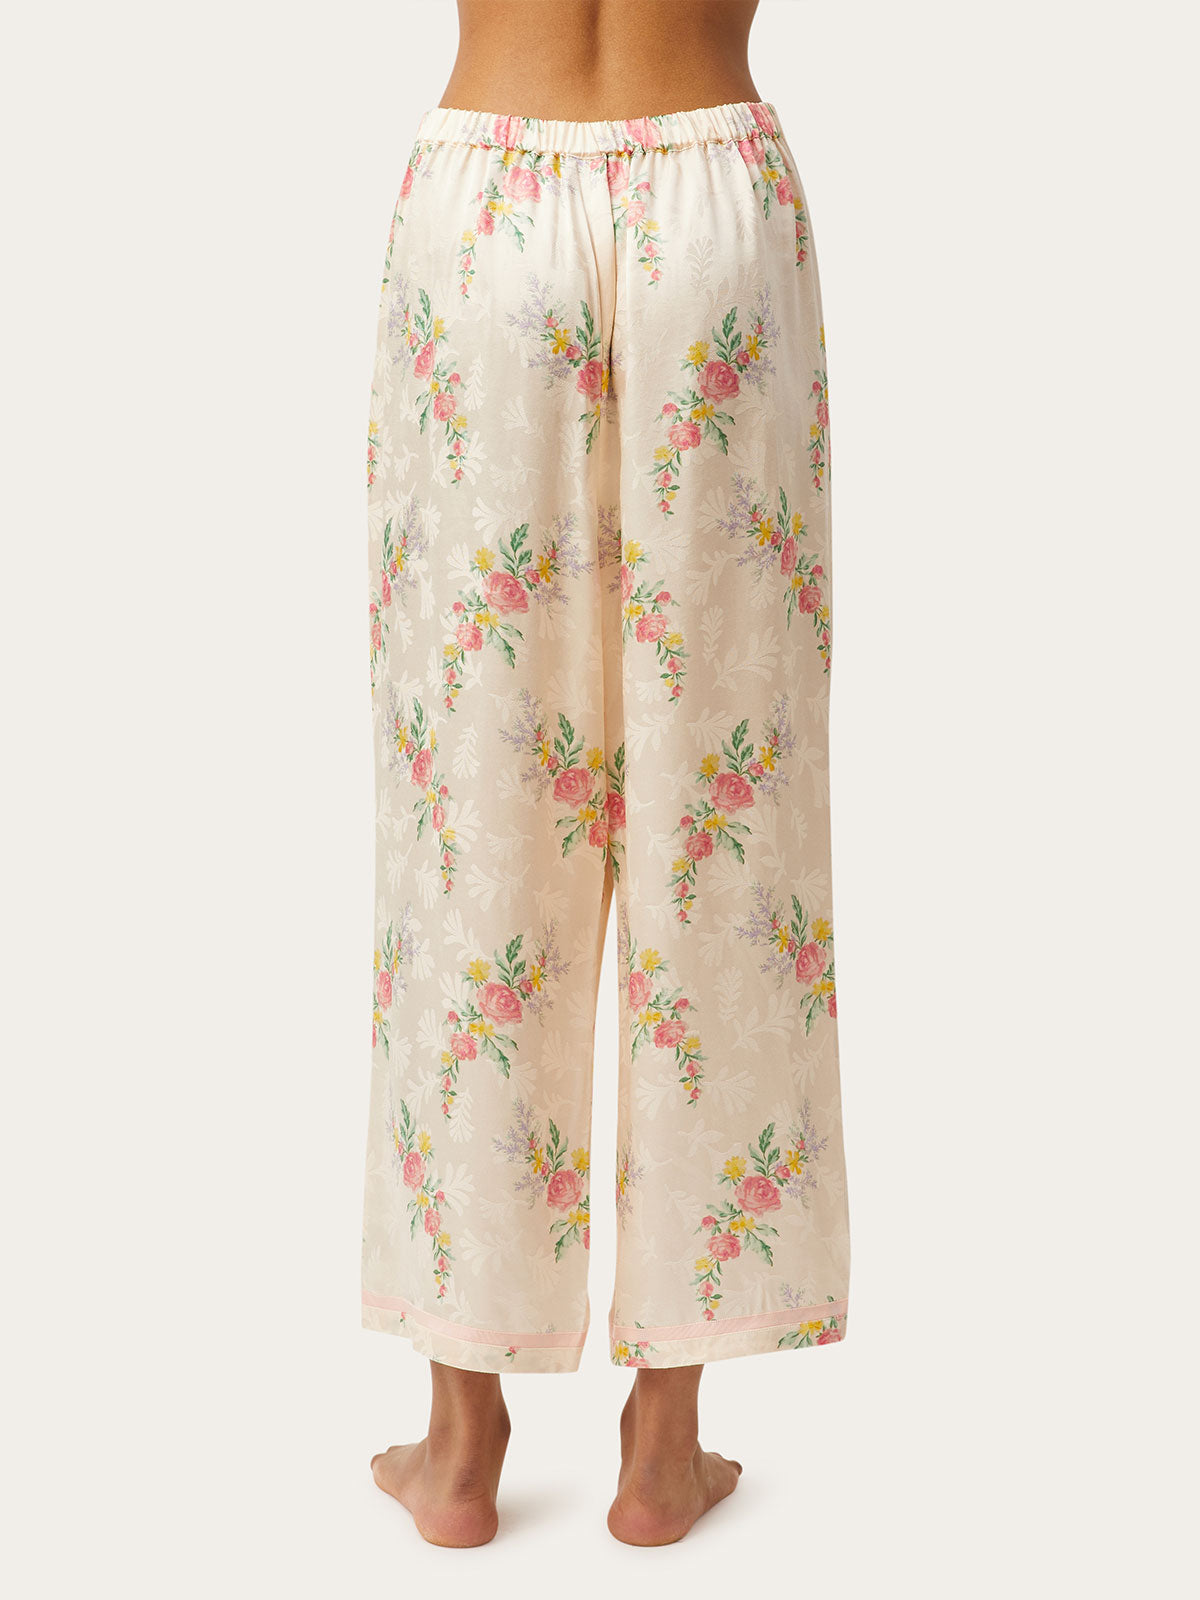 Ines Pant in Creme By Morgan Lane